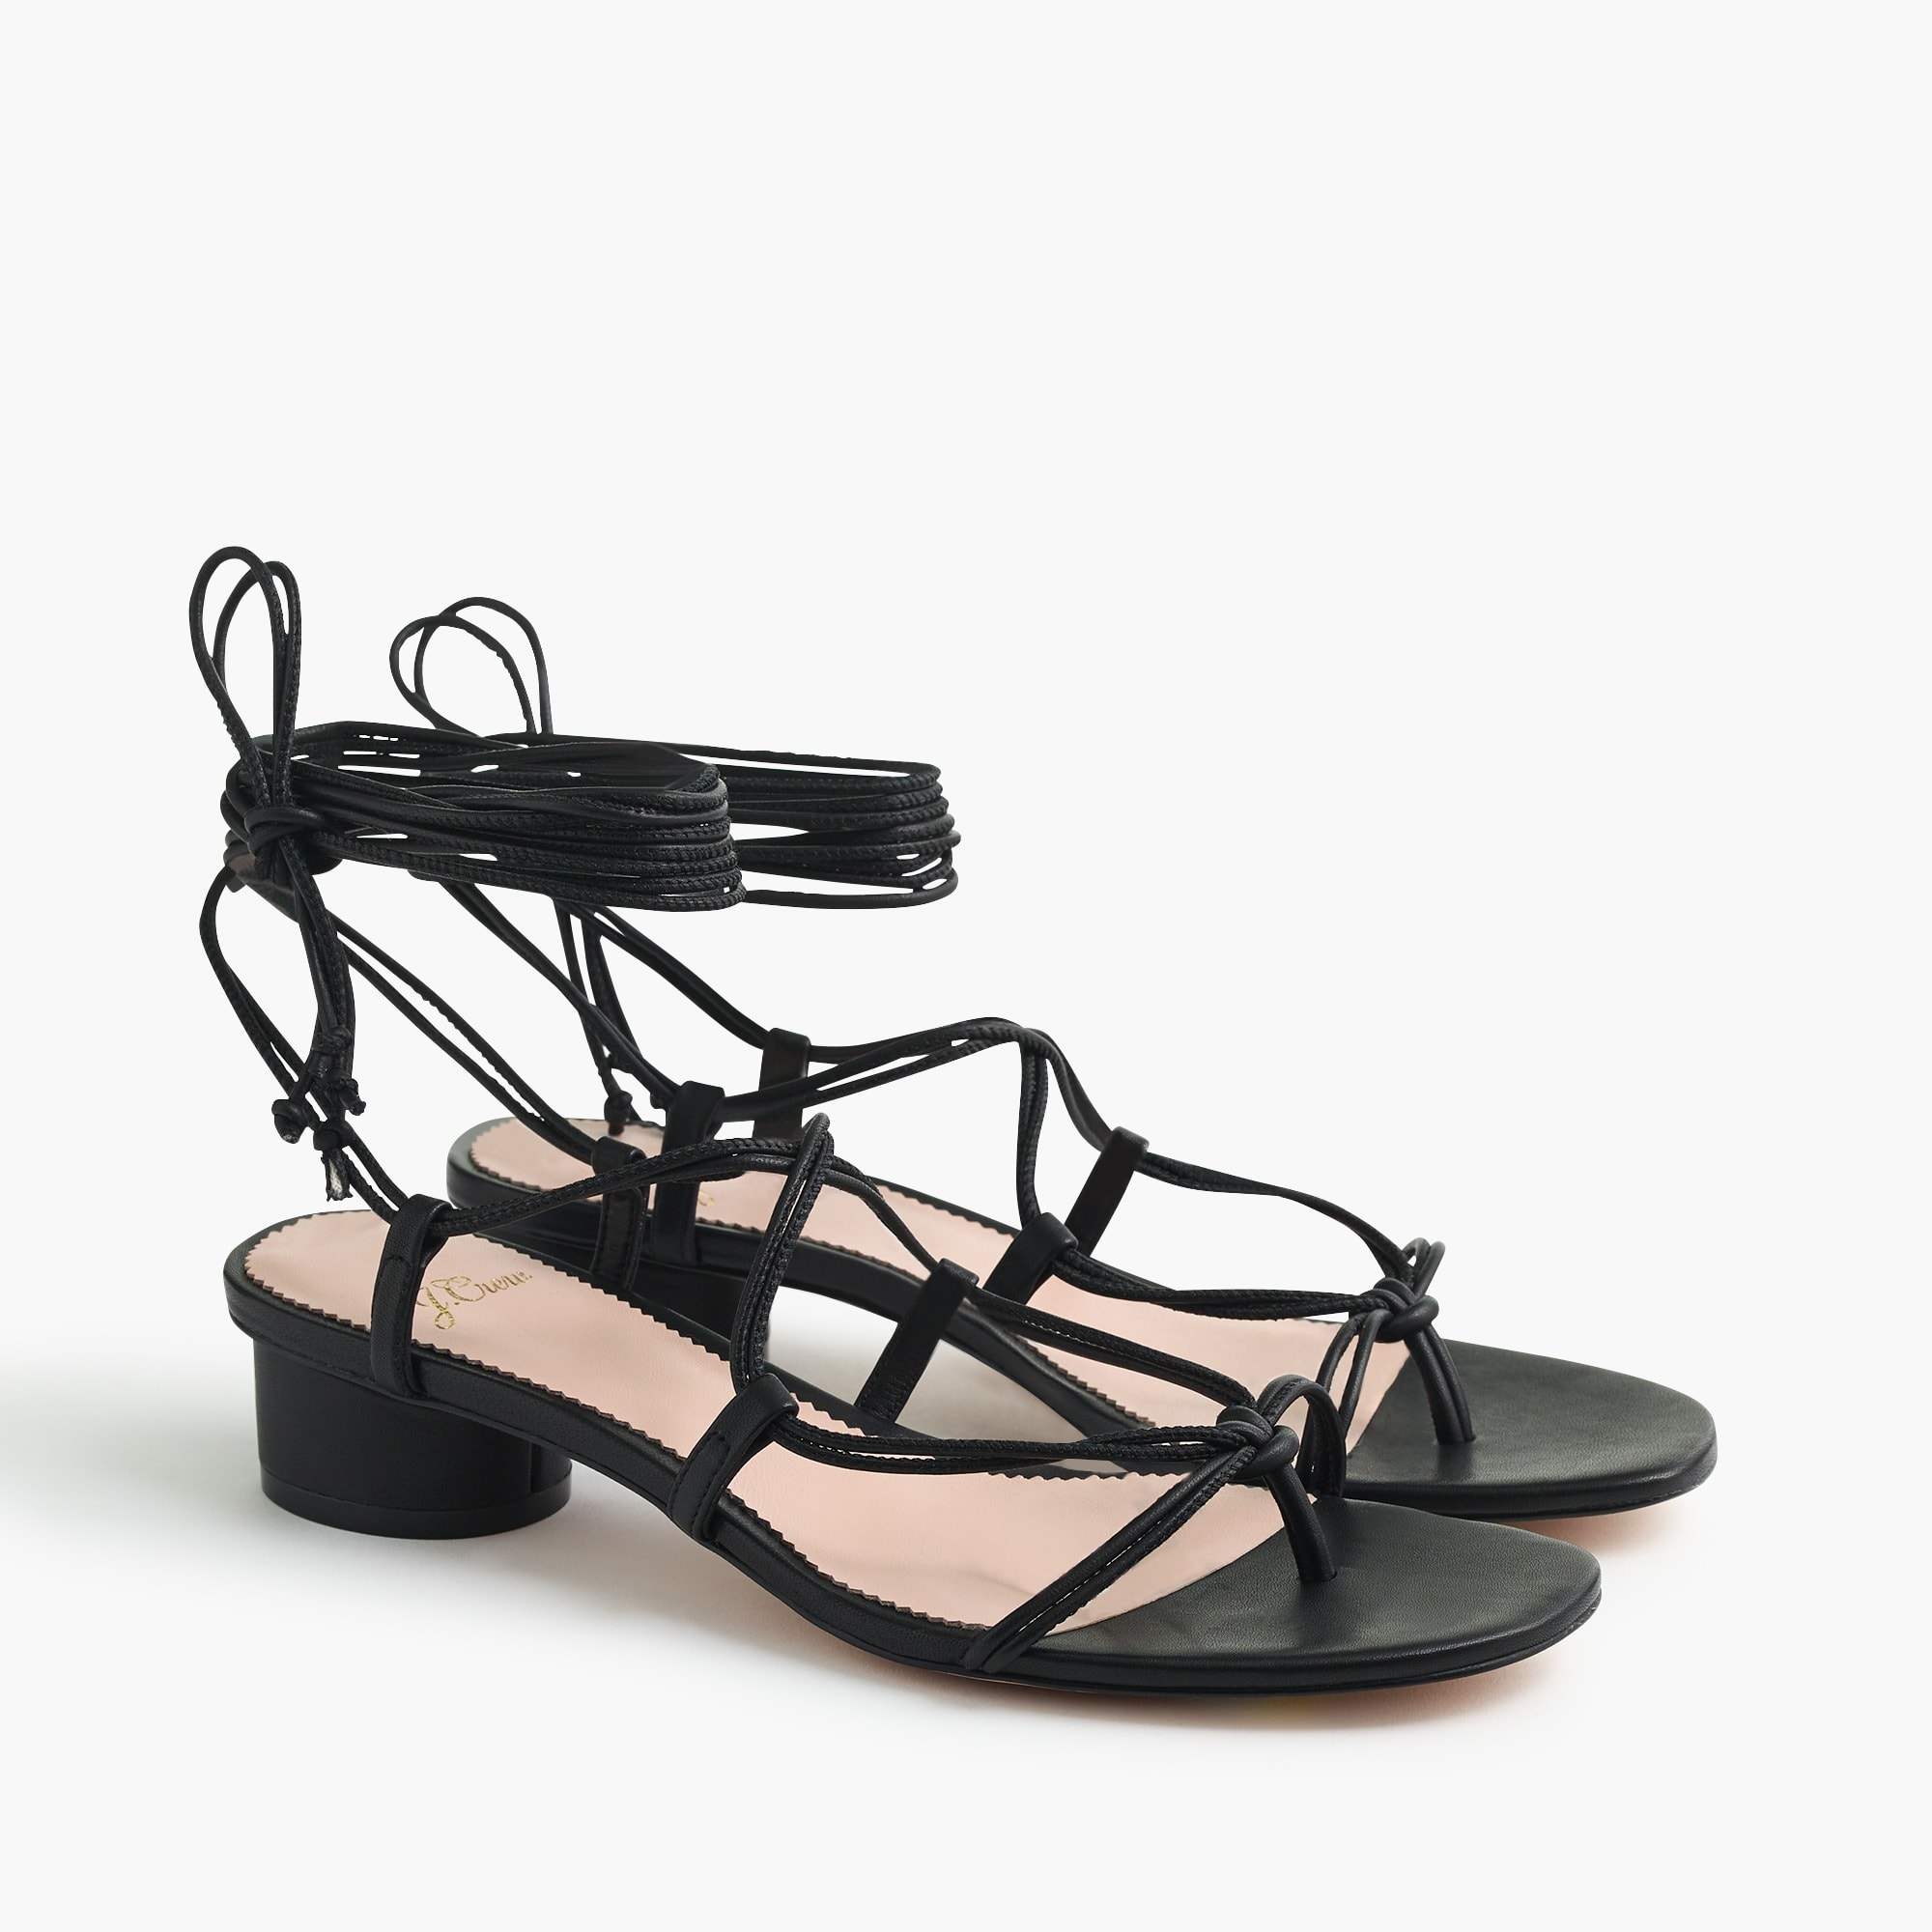 Lace-up strappy sandals in black leather